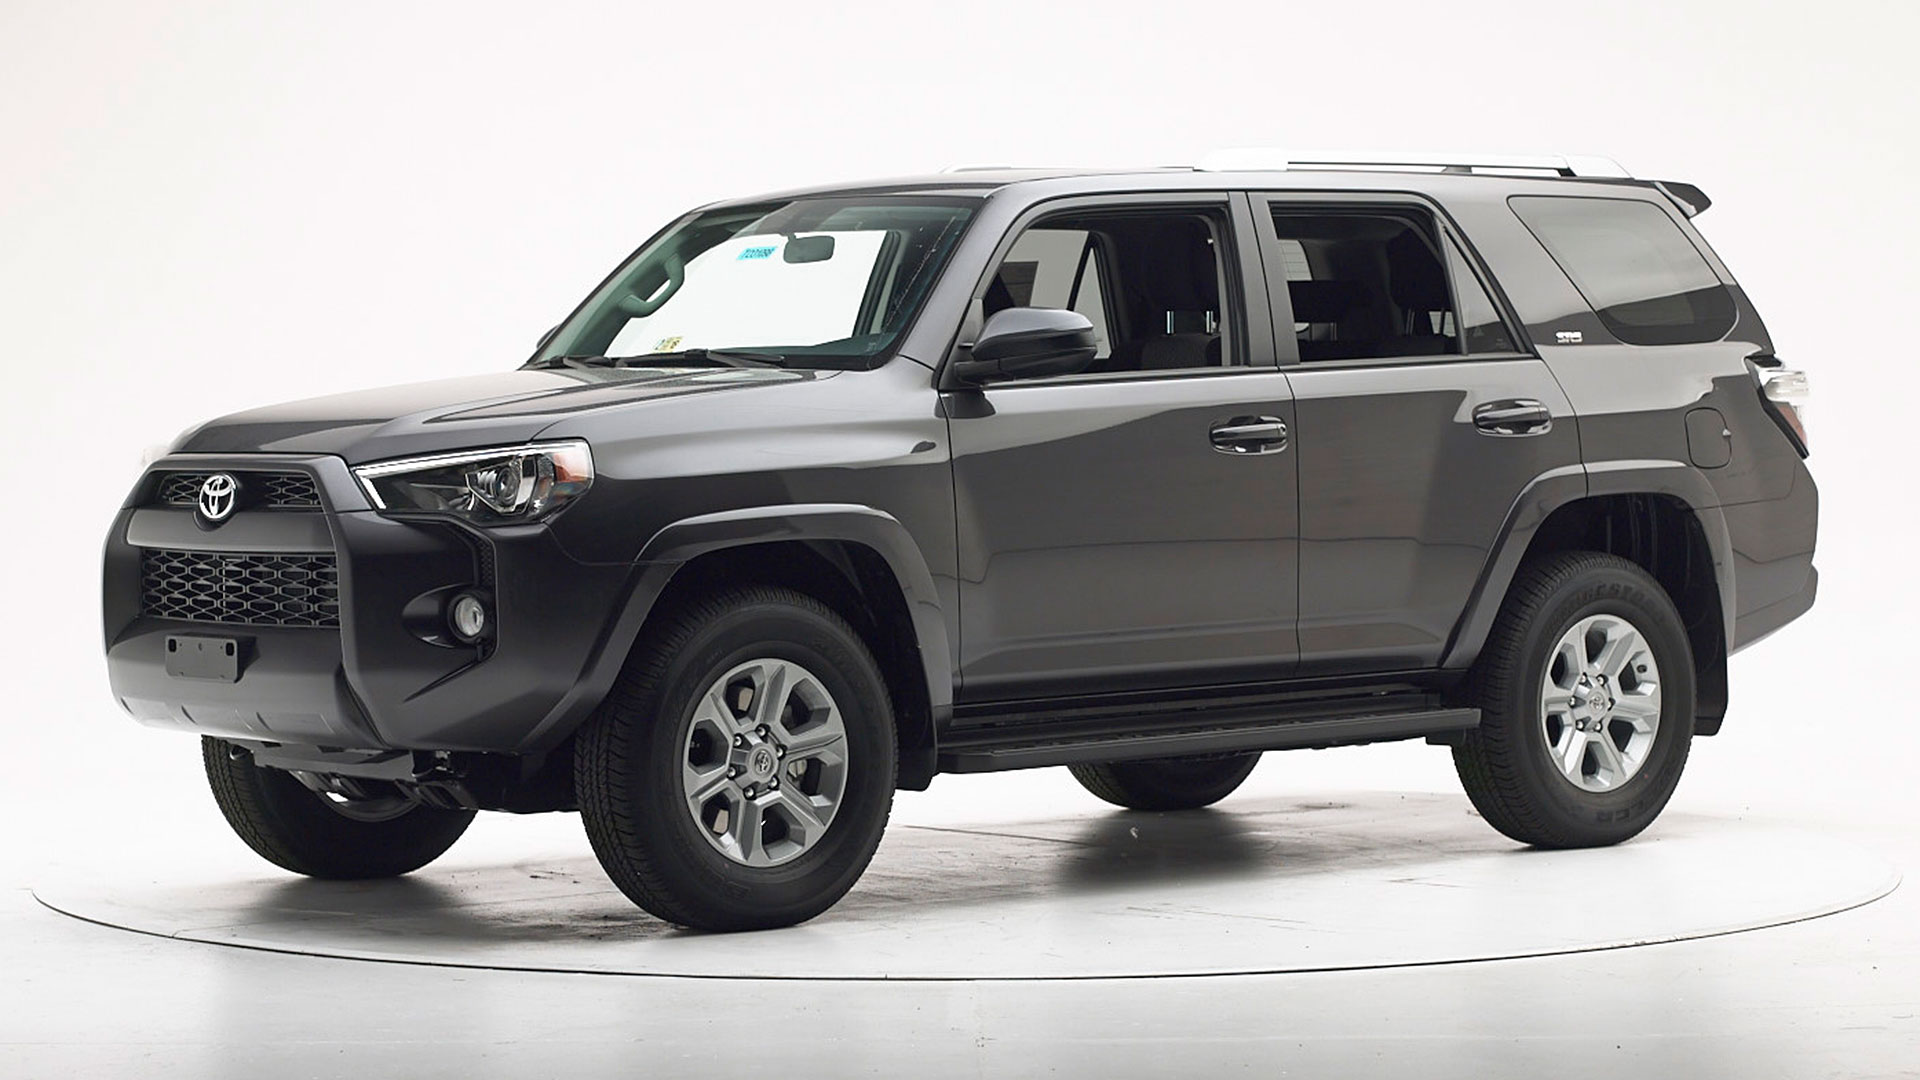 2019 Toyota 4Runner 4-door SUV